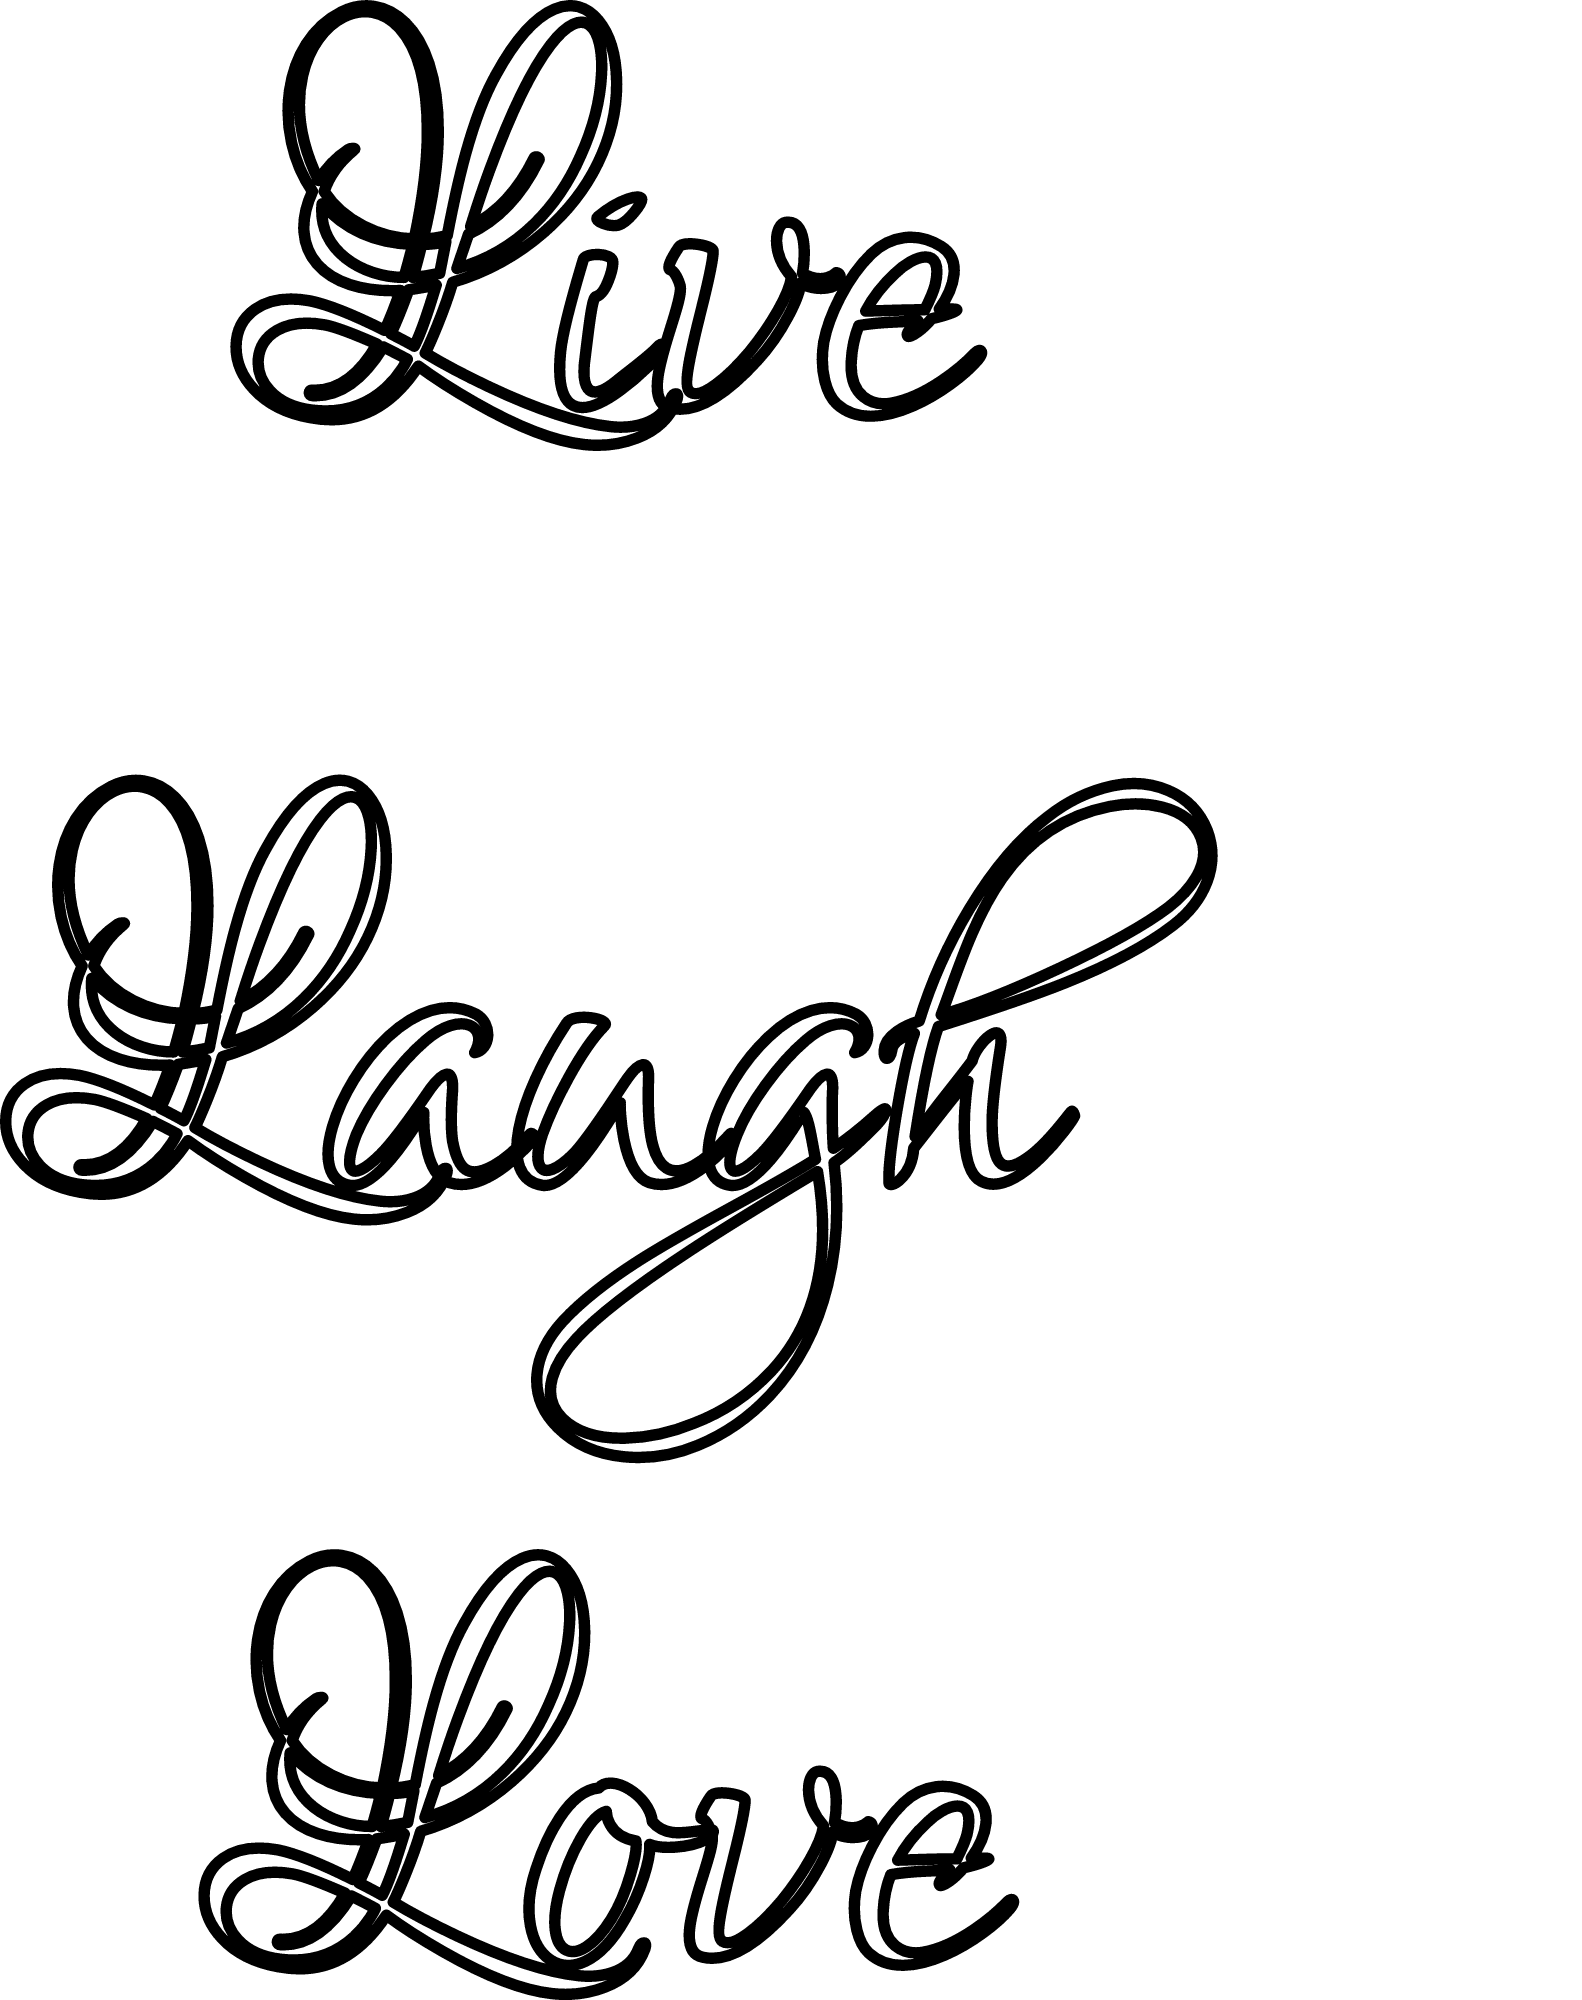 Live Laugh Love Stencil Print Customize Or Make Your Own Free At Http Rapidresizer Com Stencil Stencils Rap Free Stencils Free Stencil Maker Stencils